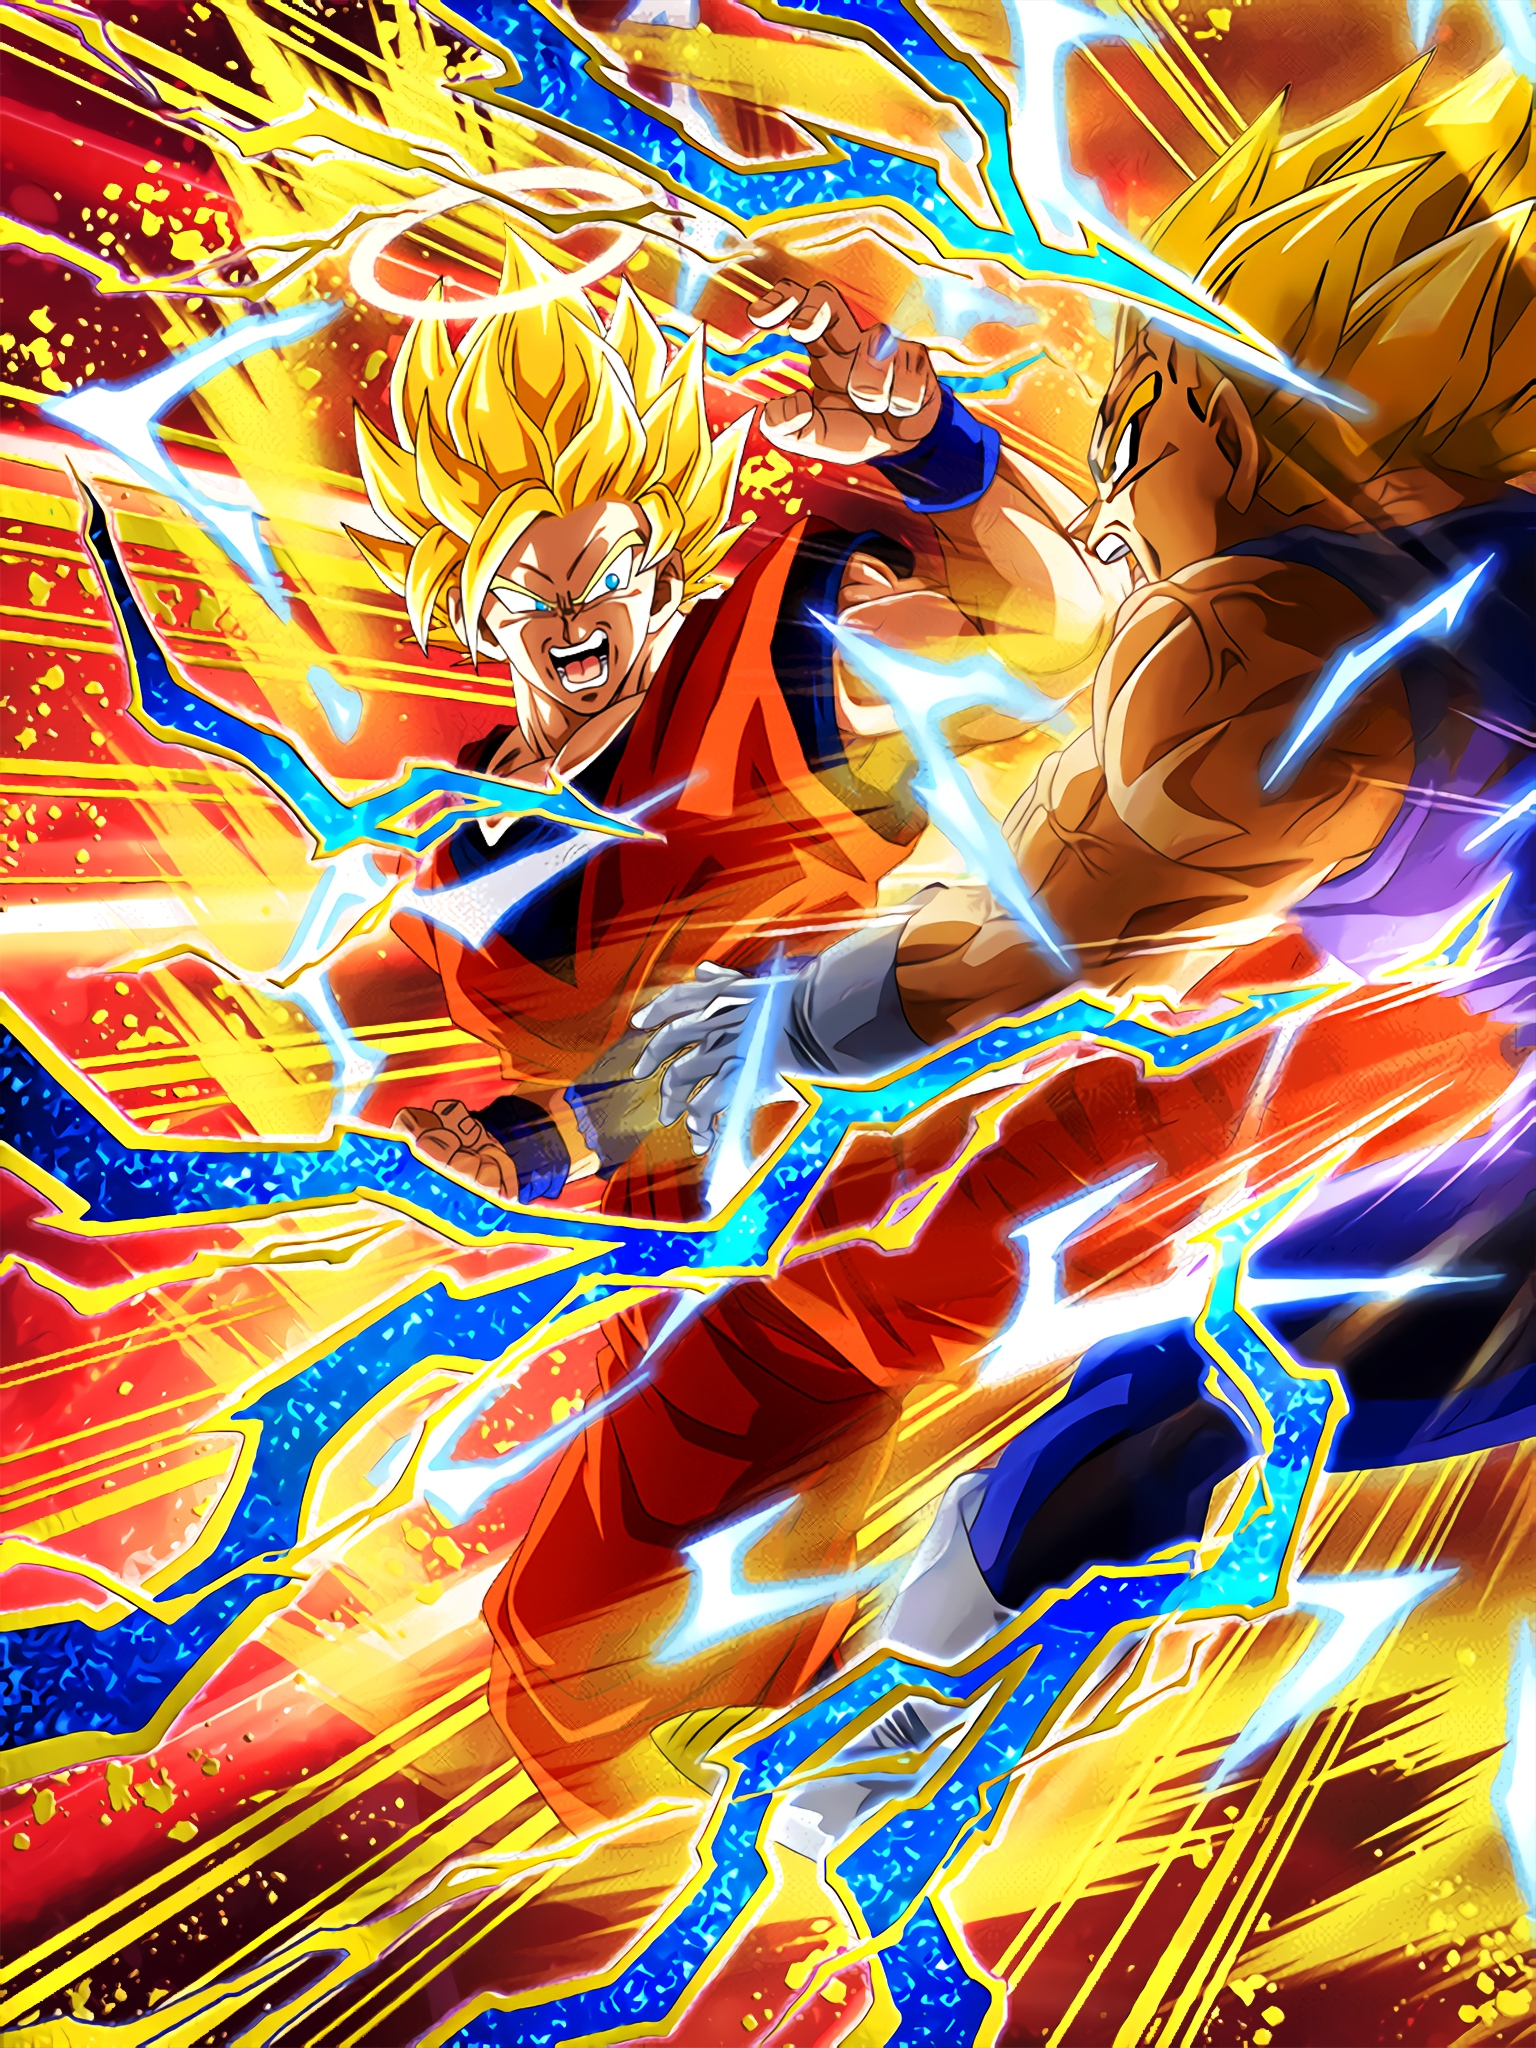 Desperate Showdown Super Saiyan 2 Goku Angel Art (Dragon Ball Z Dokkan Battle)